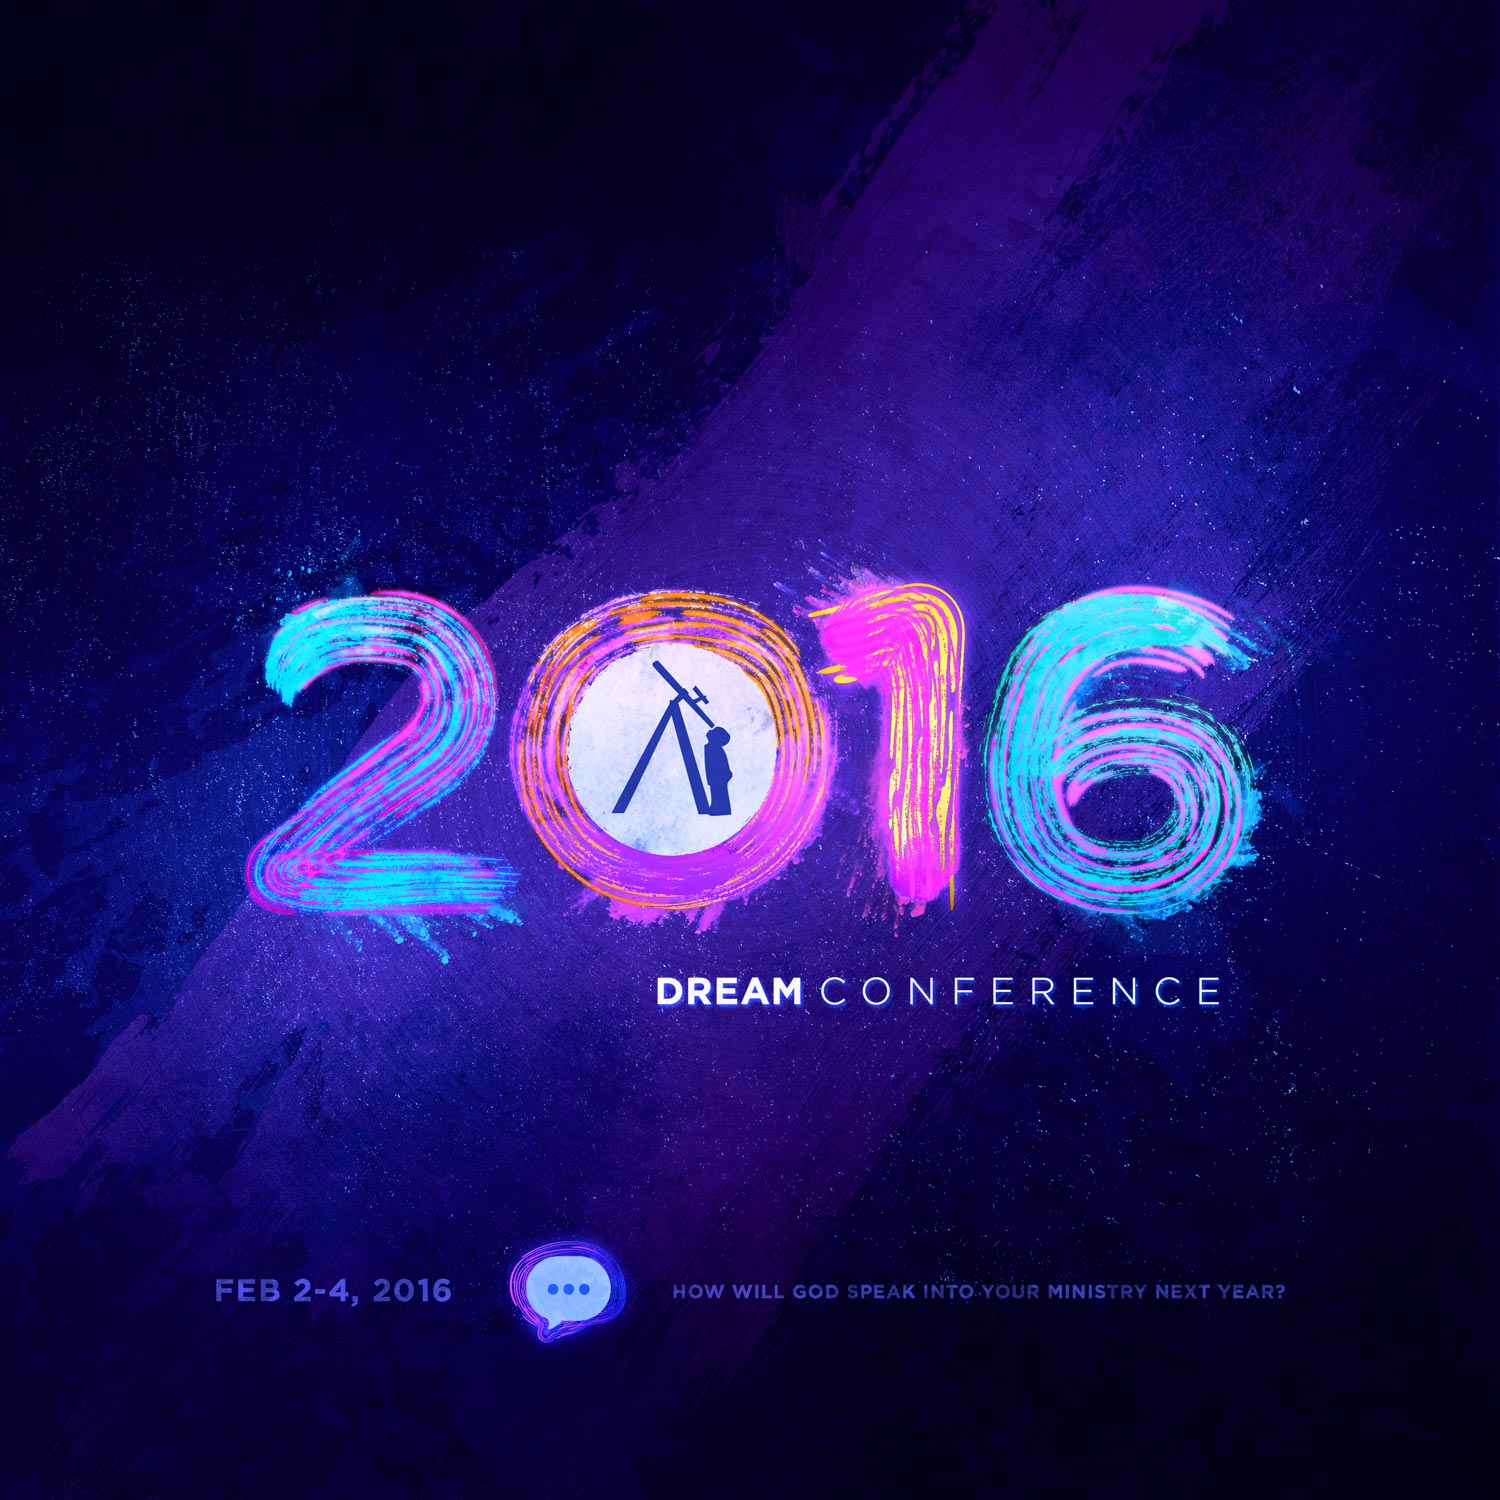 Concept for the 2016 Dream Conference teaser graphic